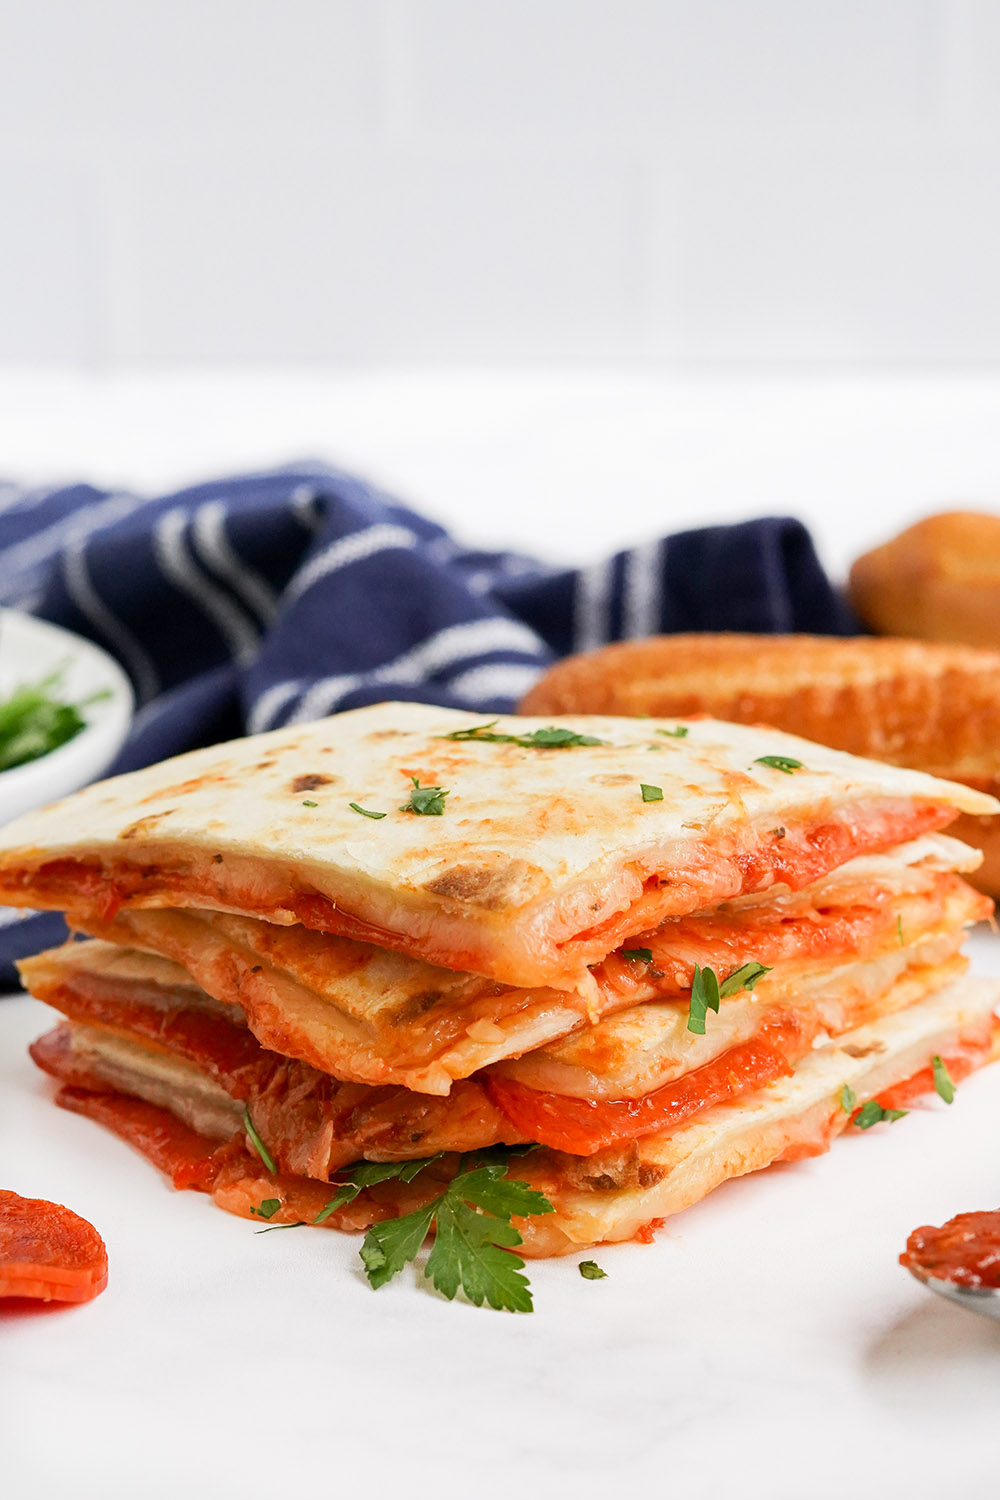 Stacked pizza quesadillas with parsley and a blue napkin.